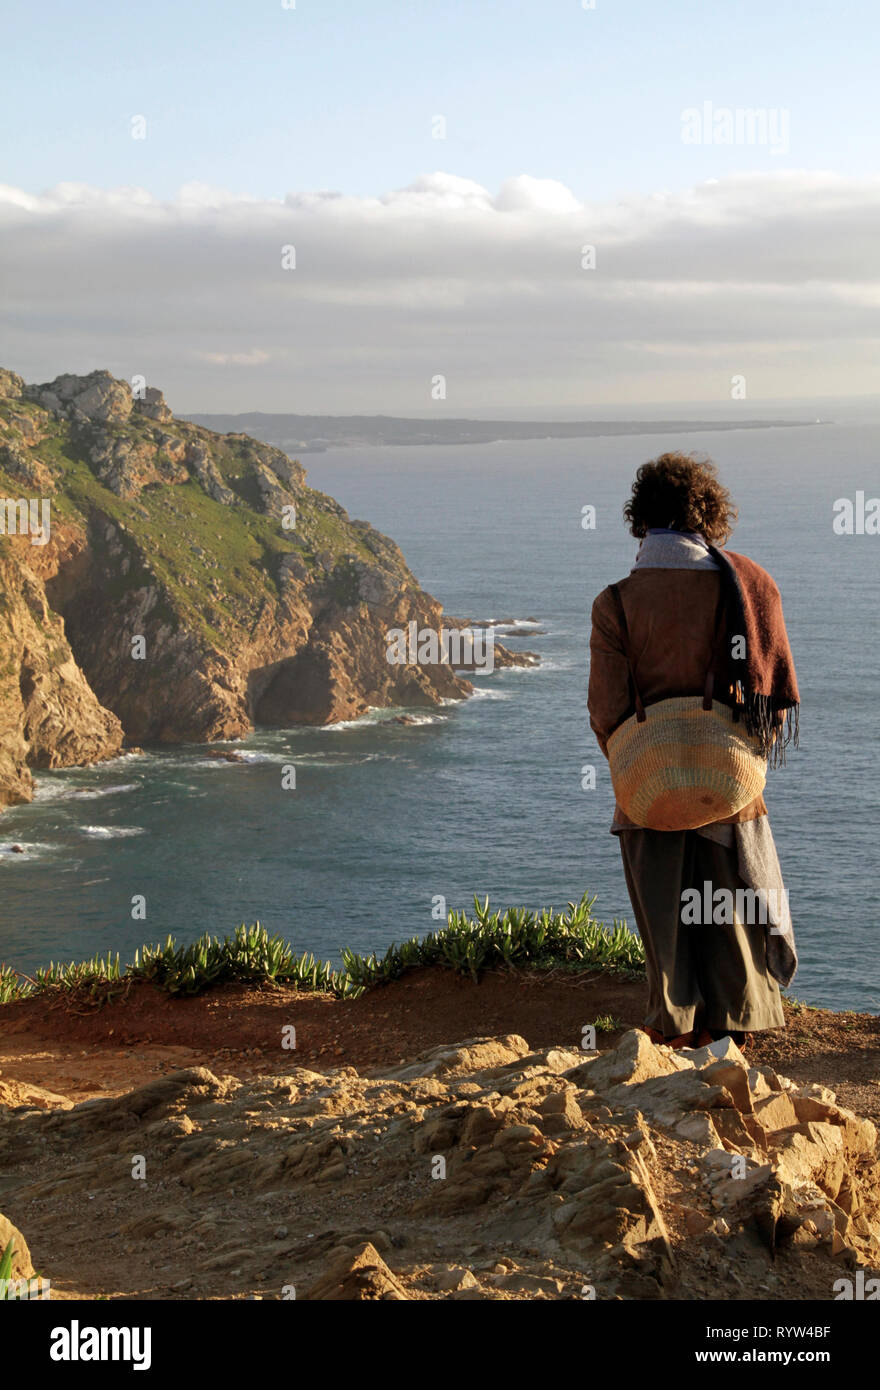 Woman standing at the cliffs looking at the horizon - Stock Image